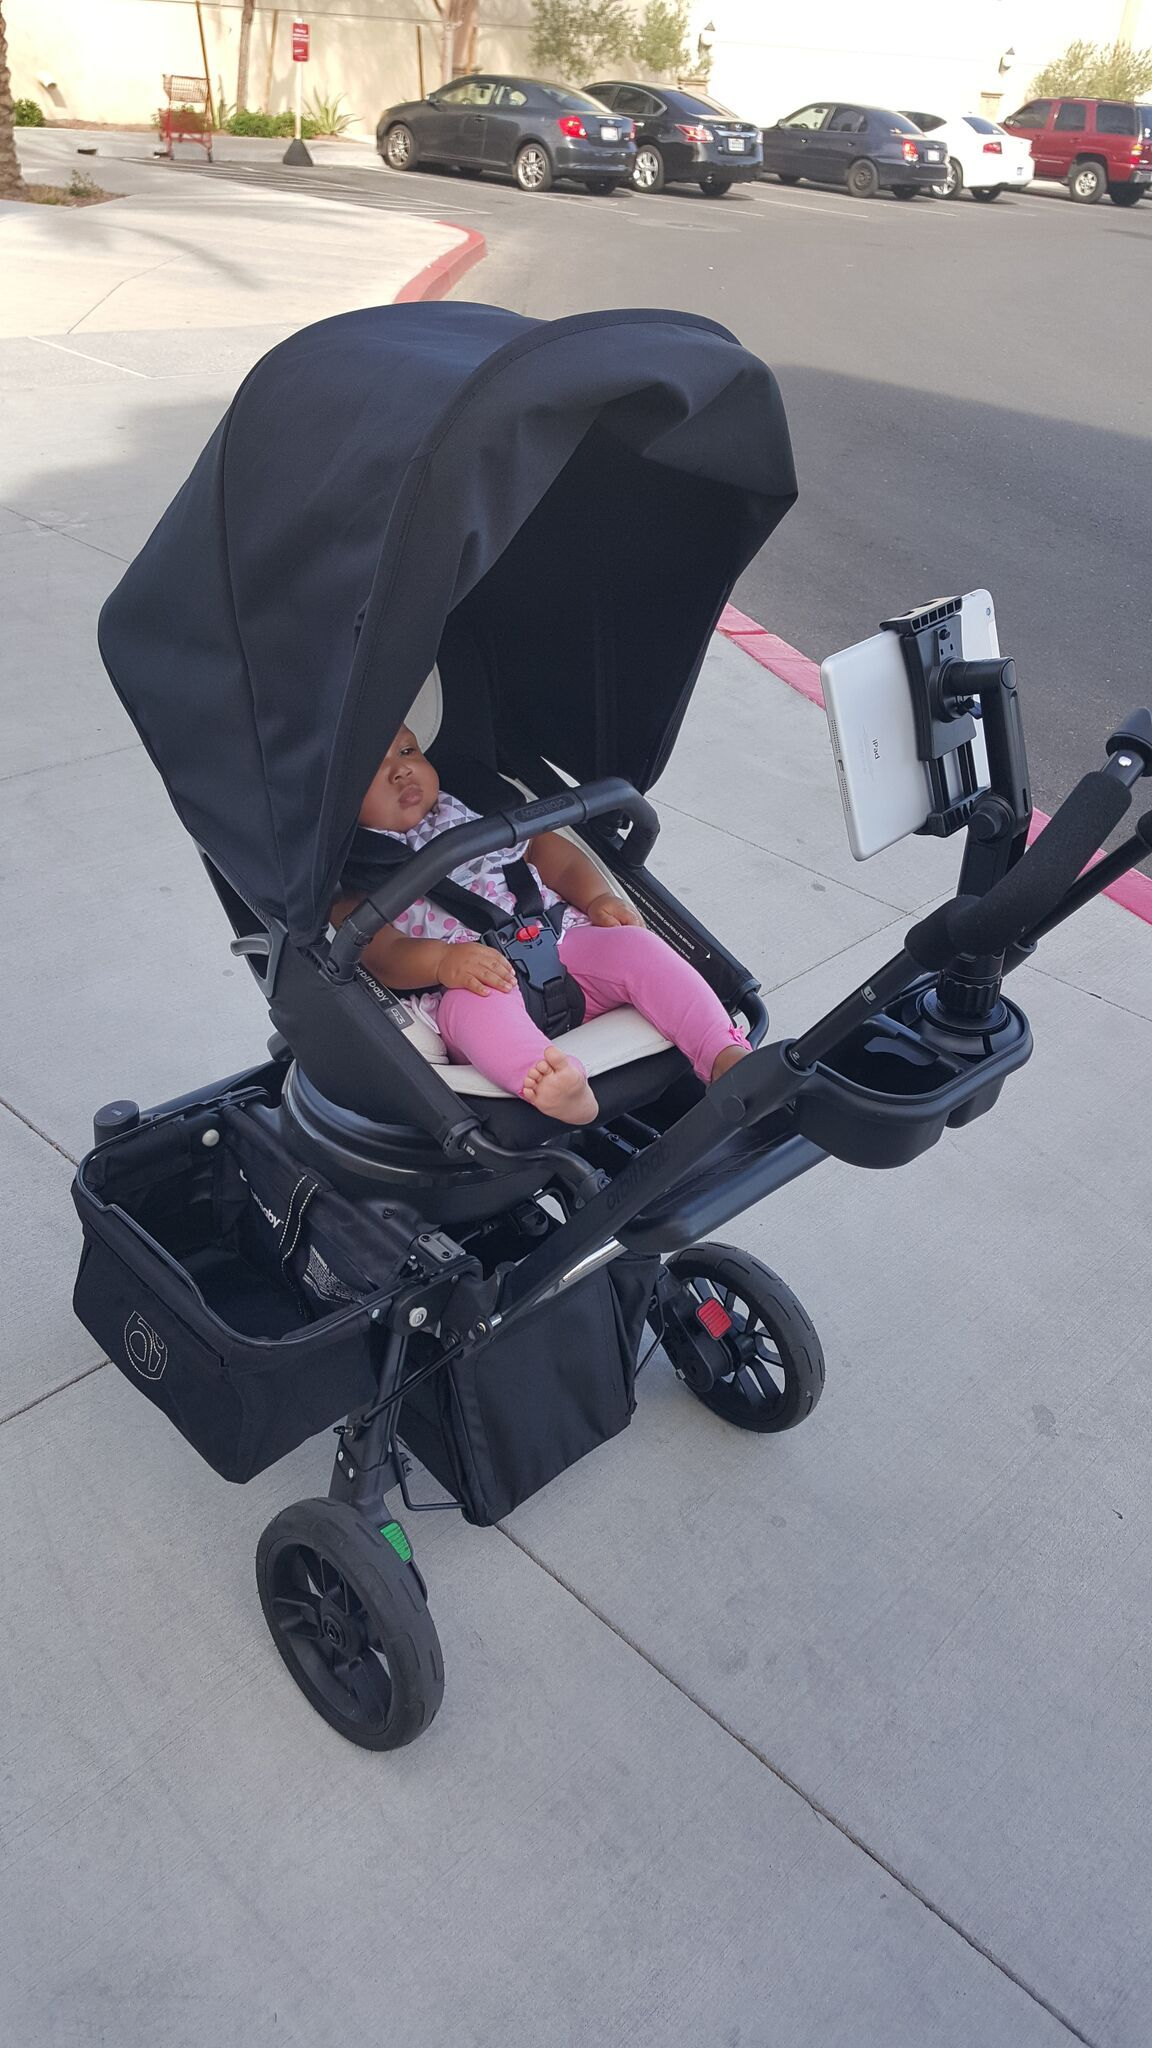 Ipad/Tablet mount on orbit stroller keeps baby entertained while out ...